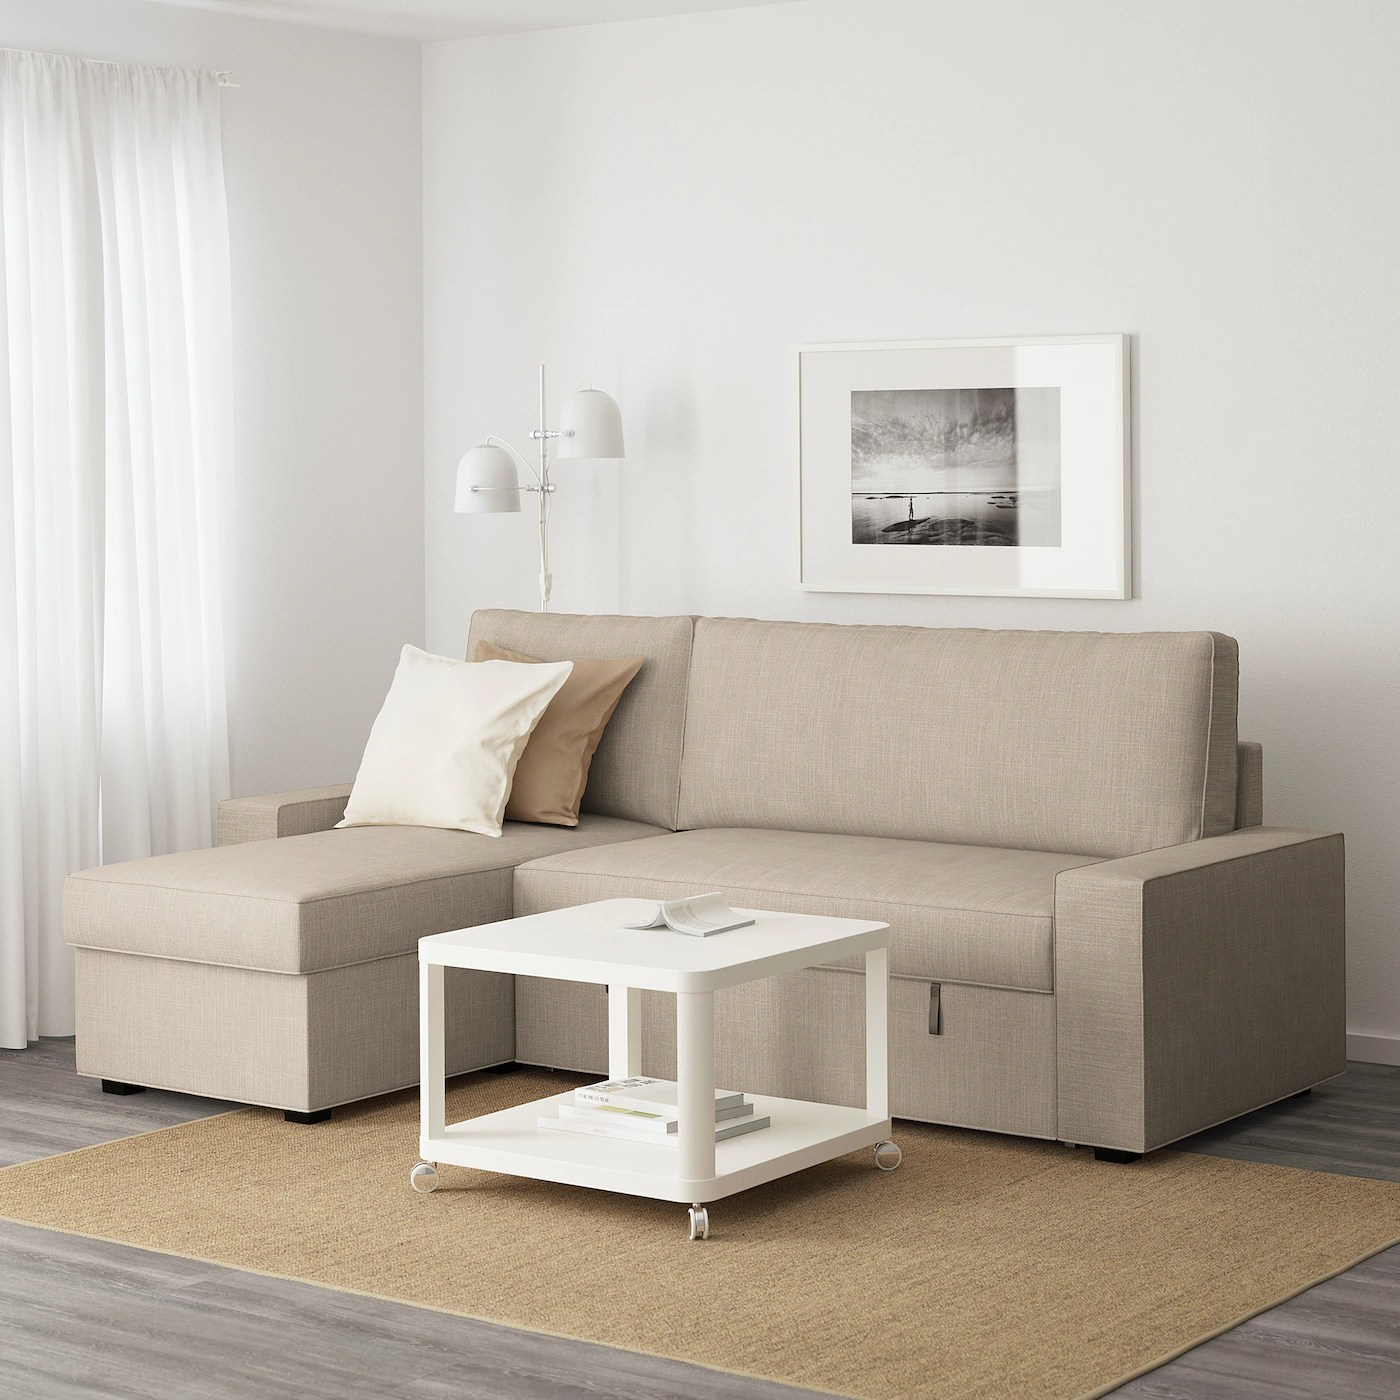 Sofas Und Couches Vilasund Sofa Bed With Chaise Longue, Hillared Beige ...